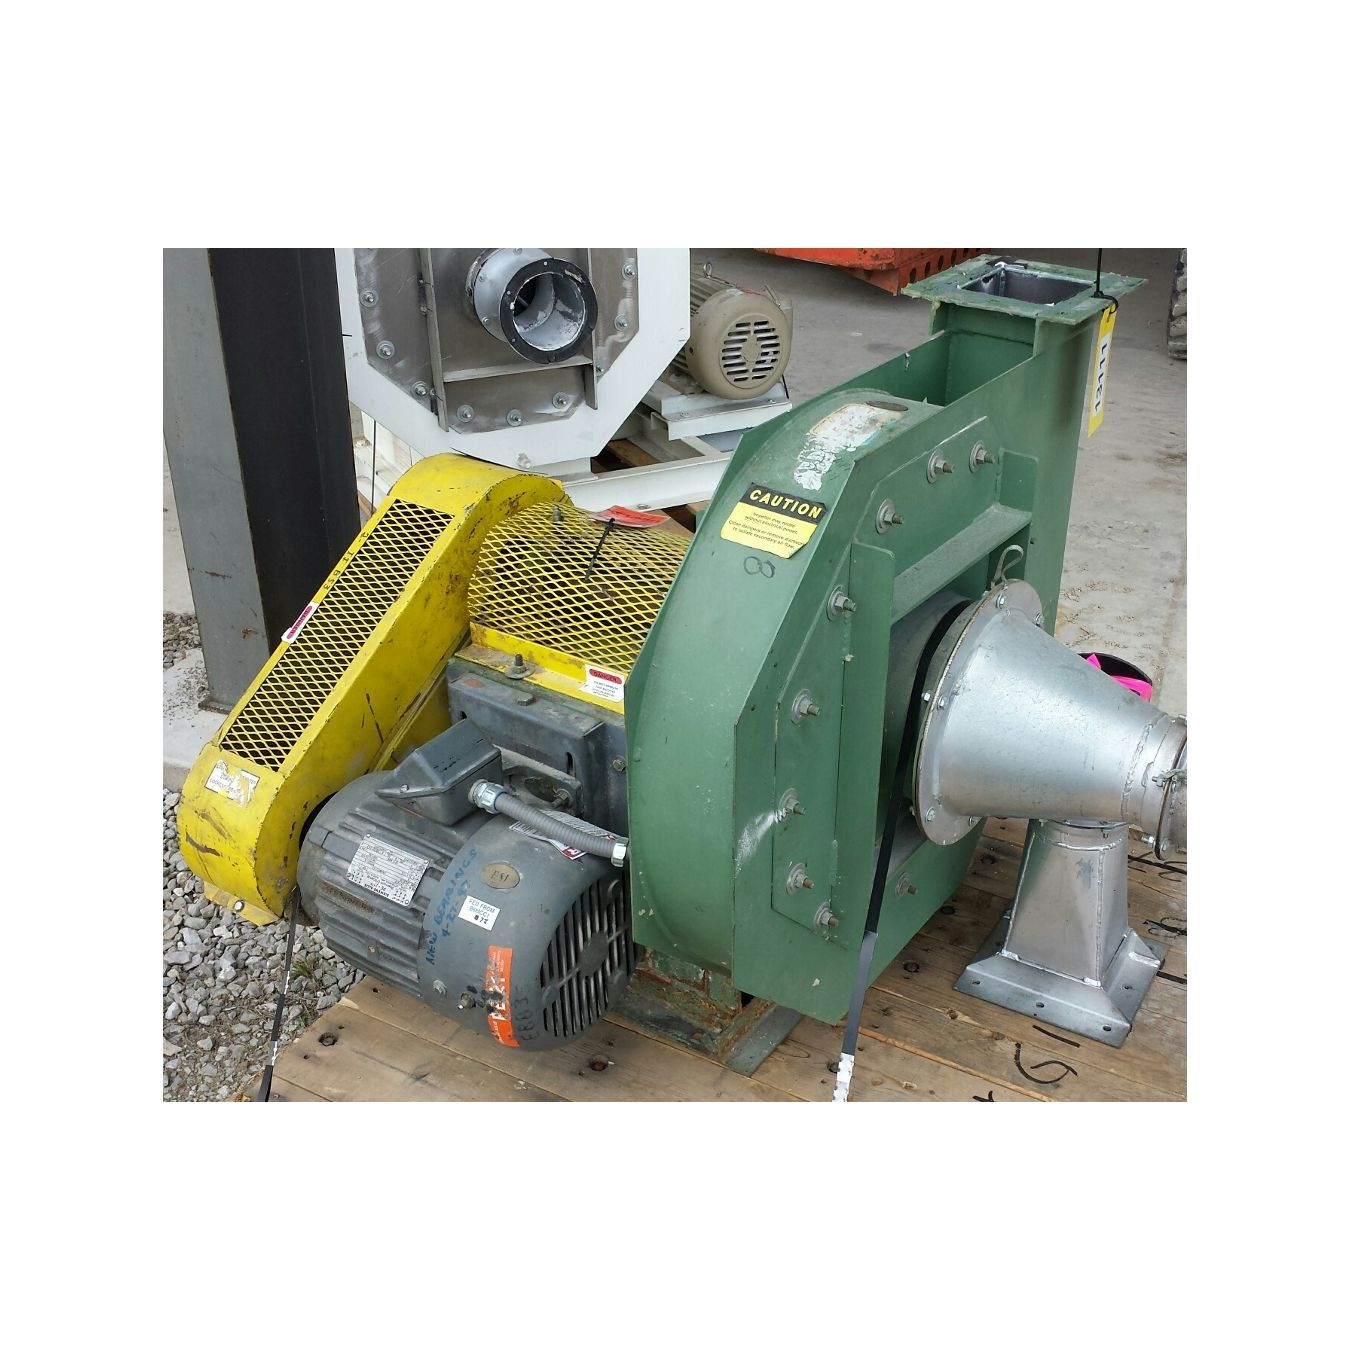 Pressure Blowers And Fans : Cfm quot sp used american fan avp turbo pressure